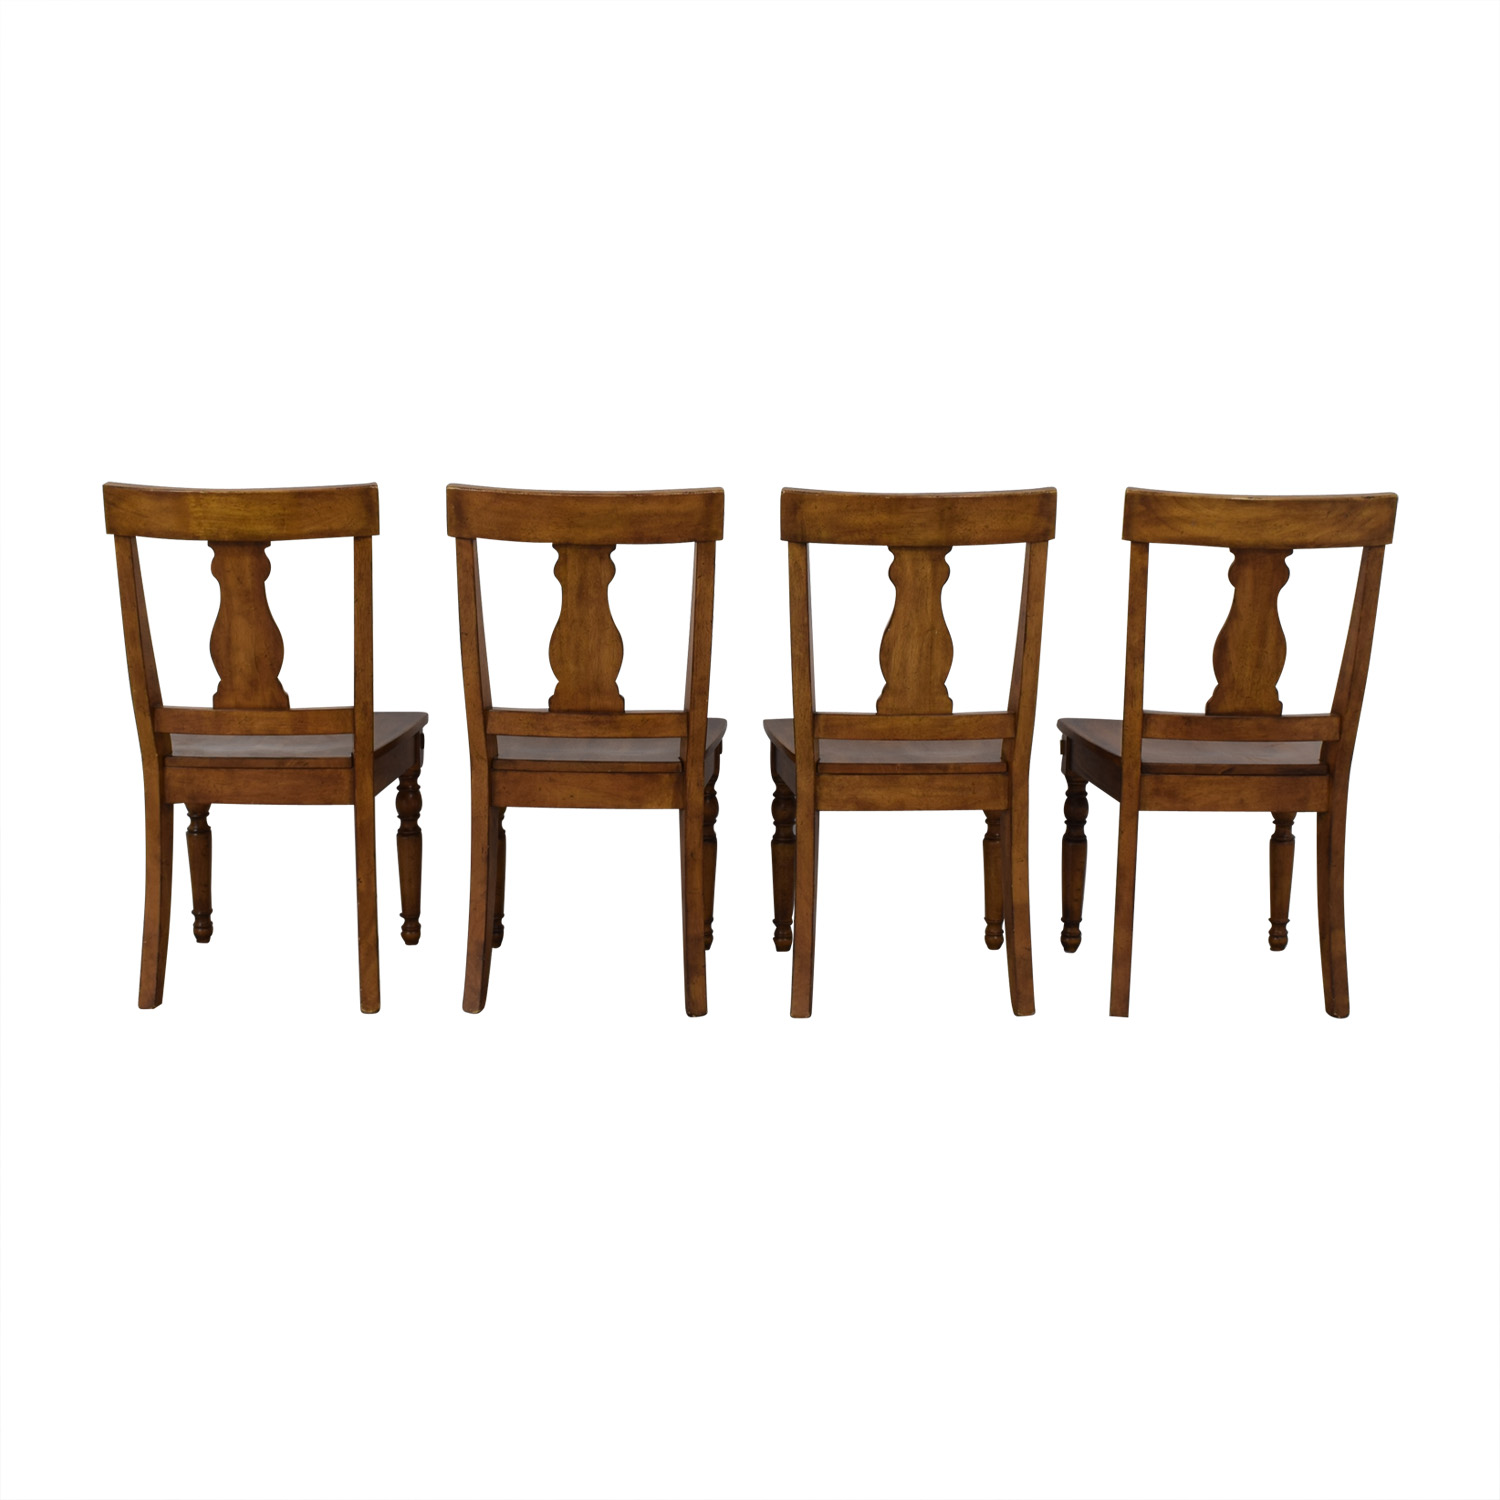 Pottery Barn Pottery Barn Harvest Dining Side Chairs used